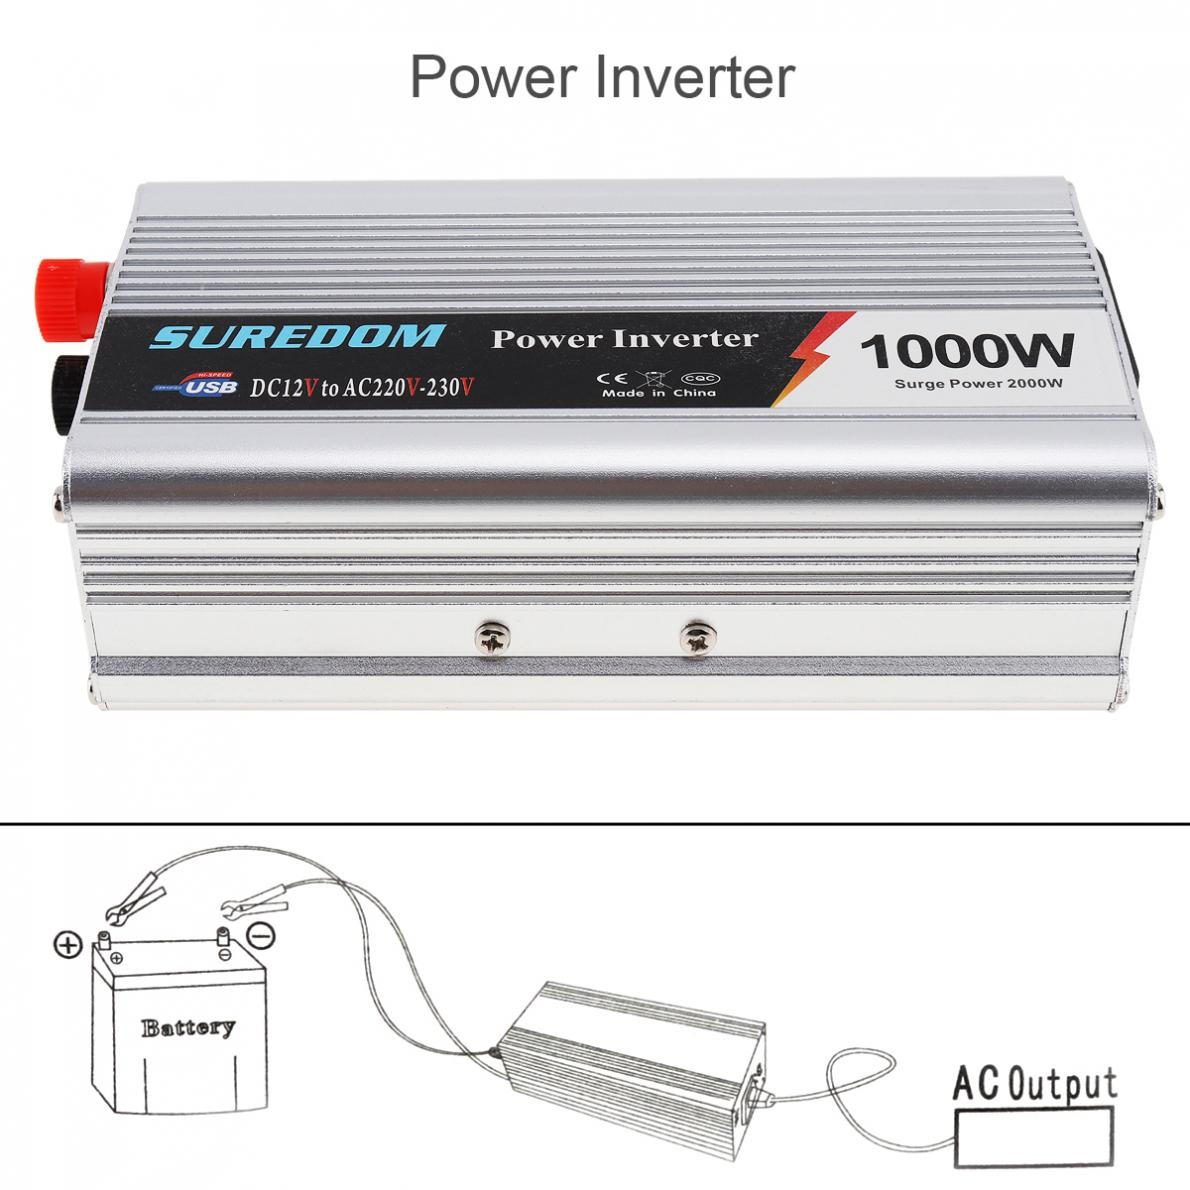 Universal USB <font><b>1000W</b></font> Car <font><b>Power</b></font> <font><b>Inverter</b></font> Watt DC 12V to AC 220V Vehicle Battery Converter <font><b>Power</b></font> Supply On-Board Charger Switch image